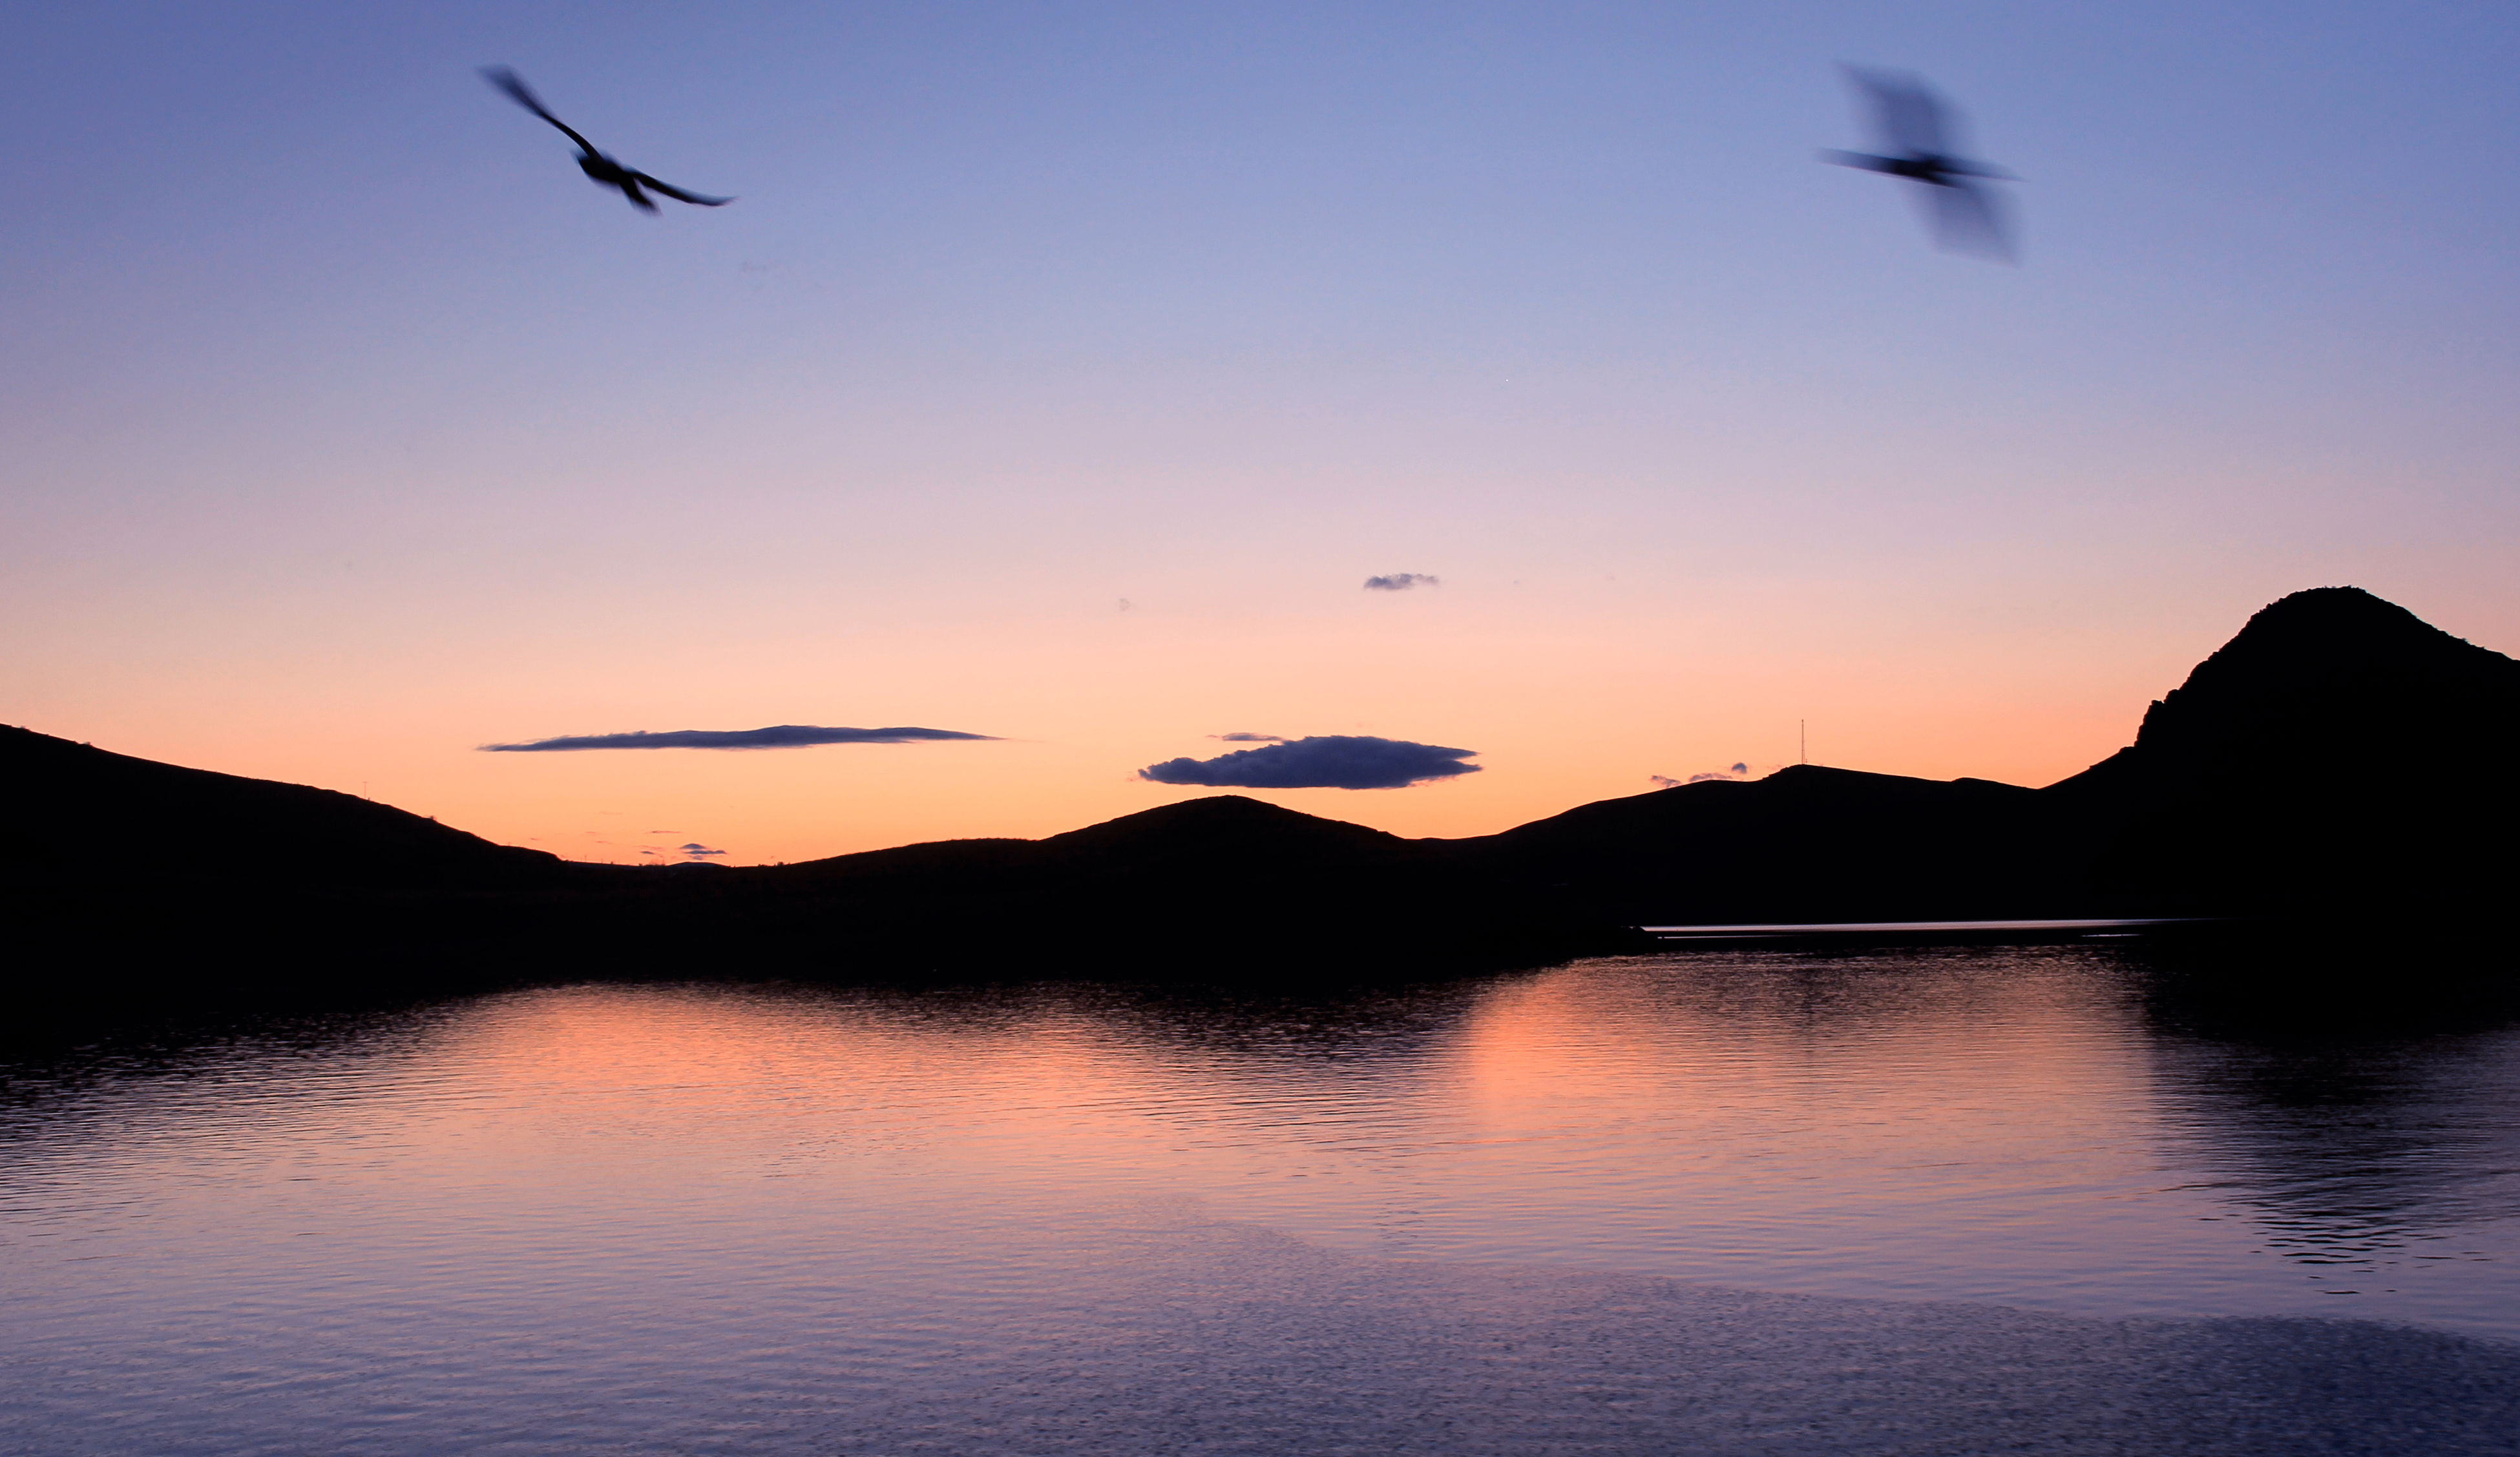 flying, sunset, bird, animal themes, animals in the wild, silhouette, orange color, nature, animal wildlife, water, reflection, sky, beauty in nature, scenics, no people, one animal, tranquility, outdoors, mountain, day